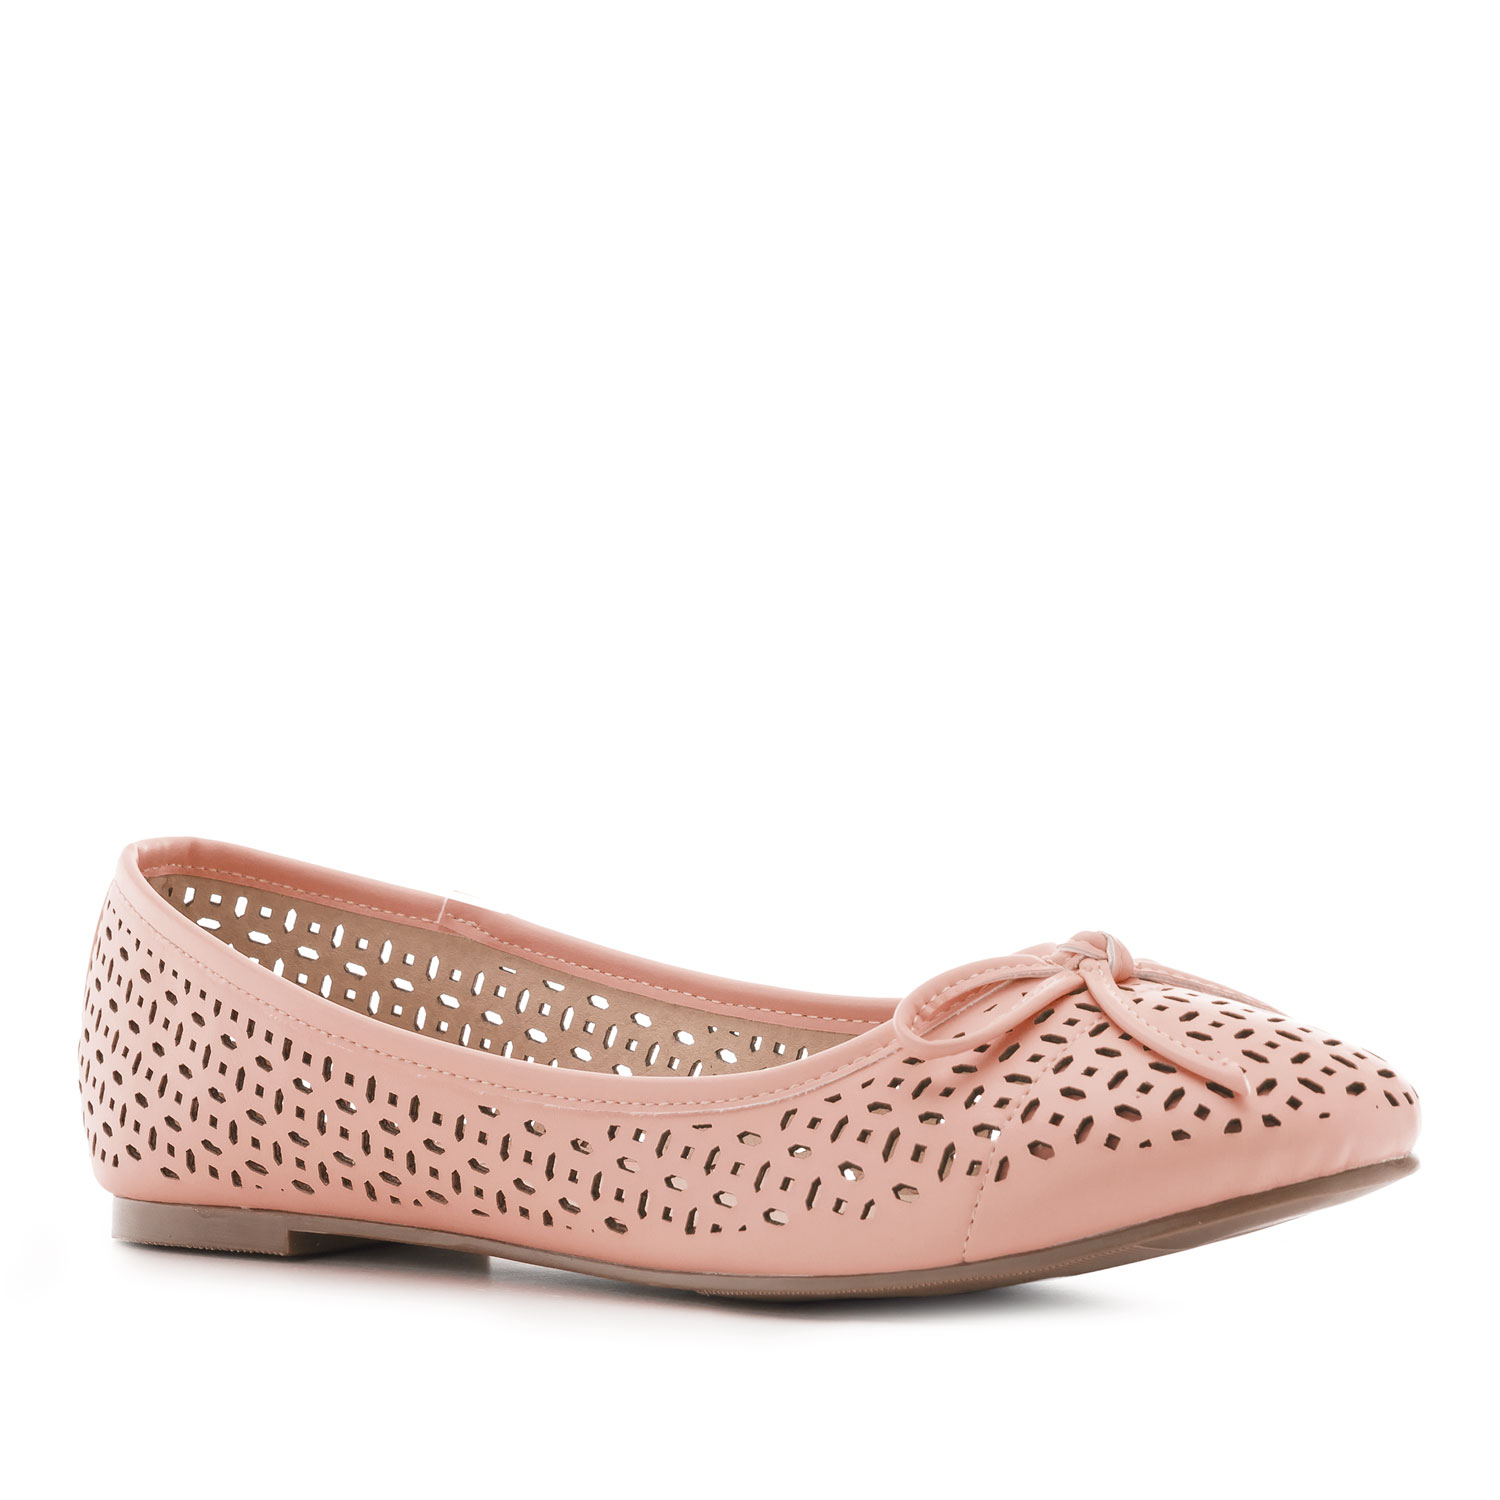 Die-cut Ballet Flats in Salmon faux Leather